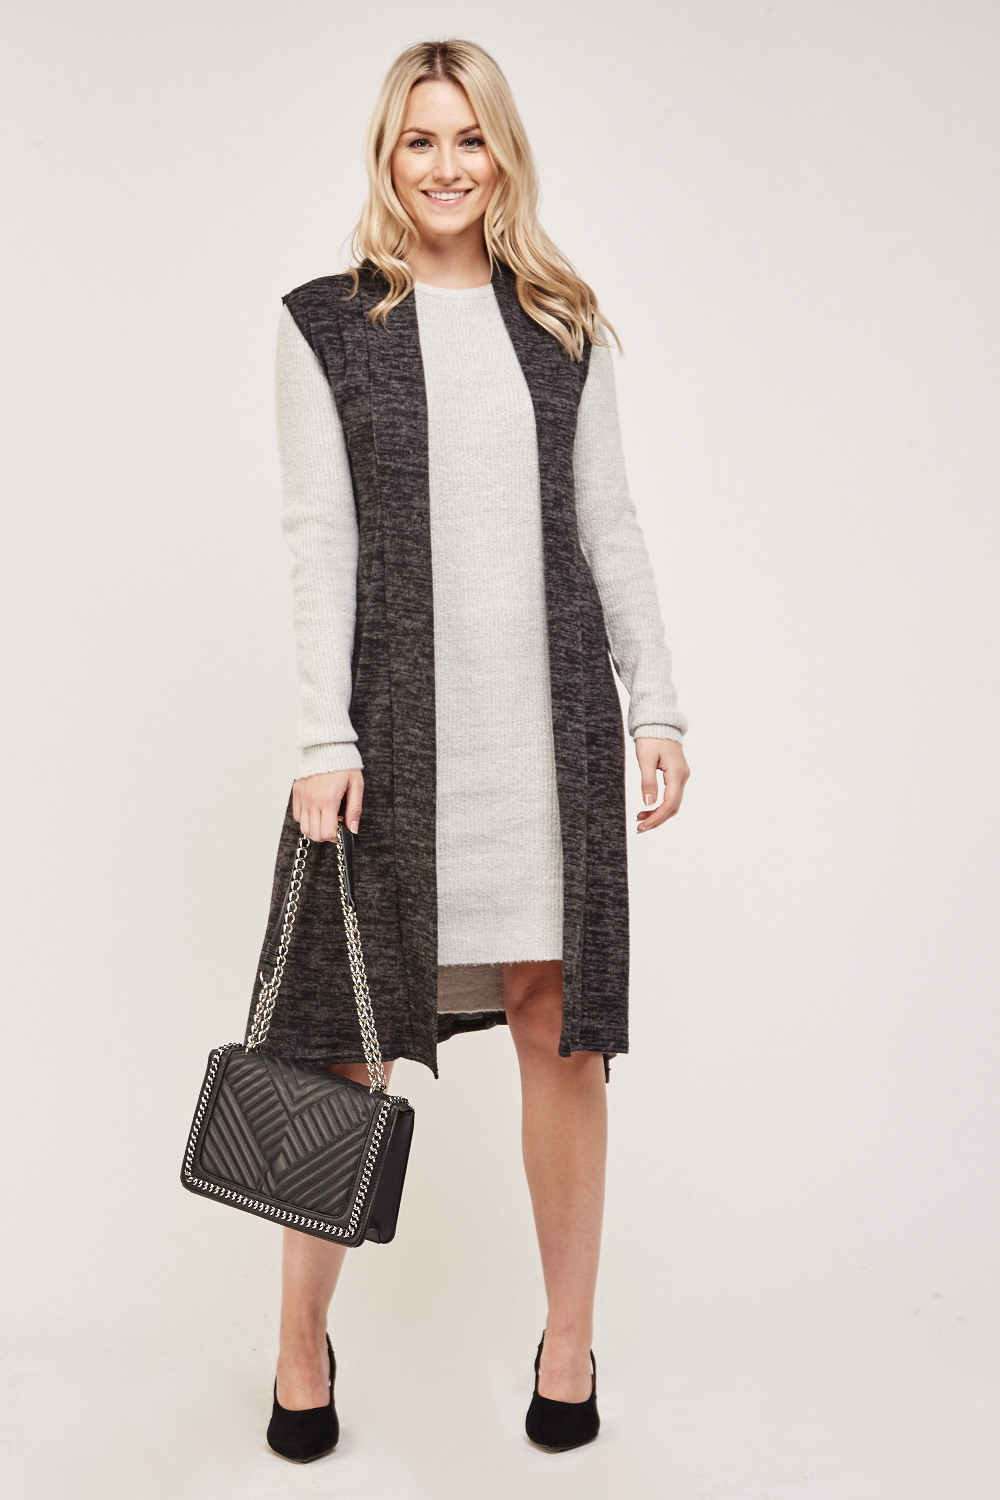 e6153536878a Sleeveless Thin Speckled Cardigan - Black/Grey - Just £5